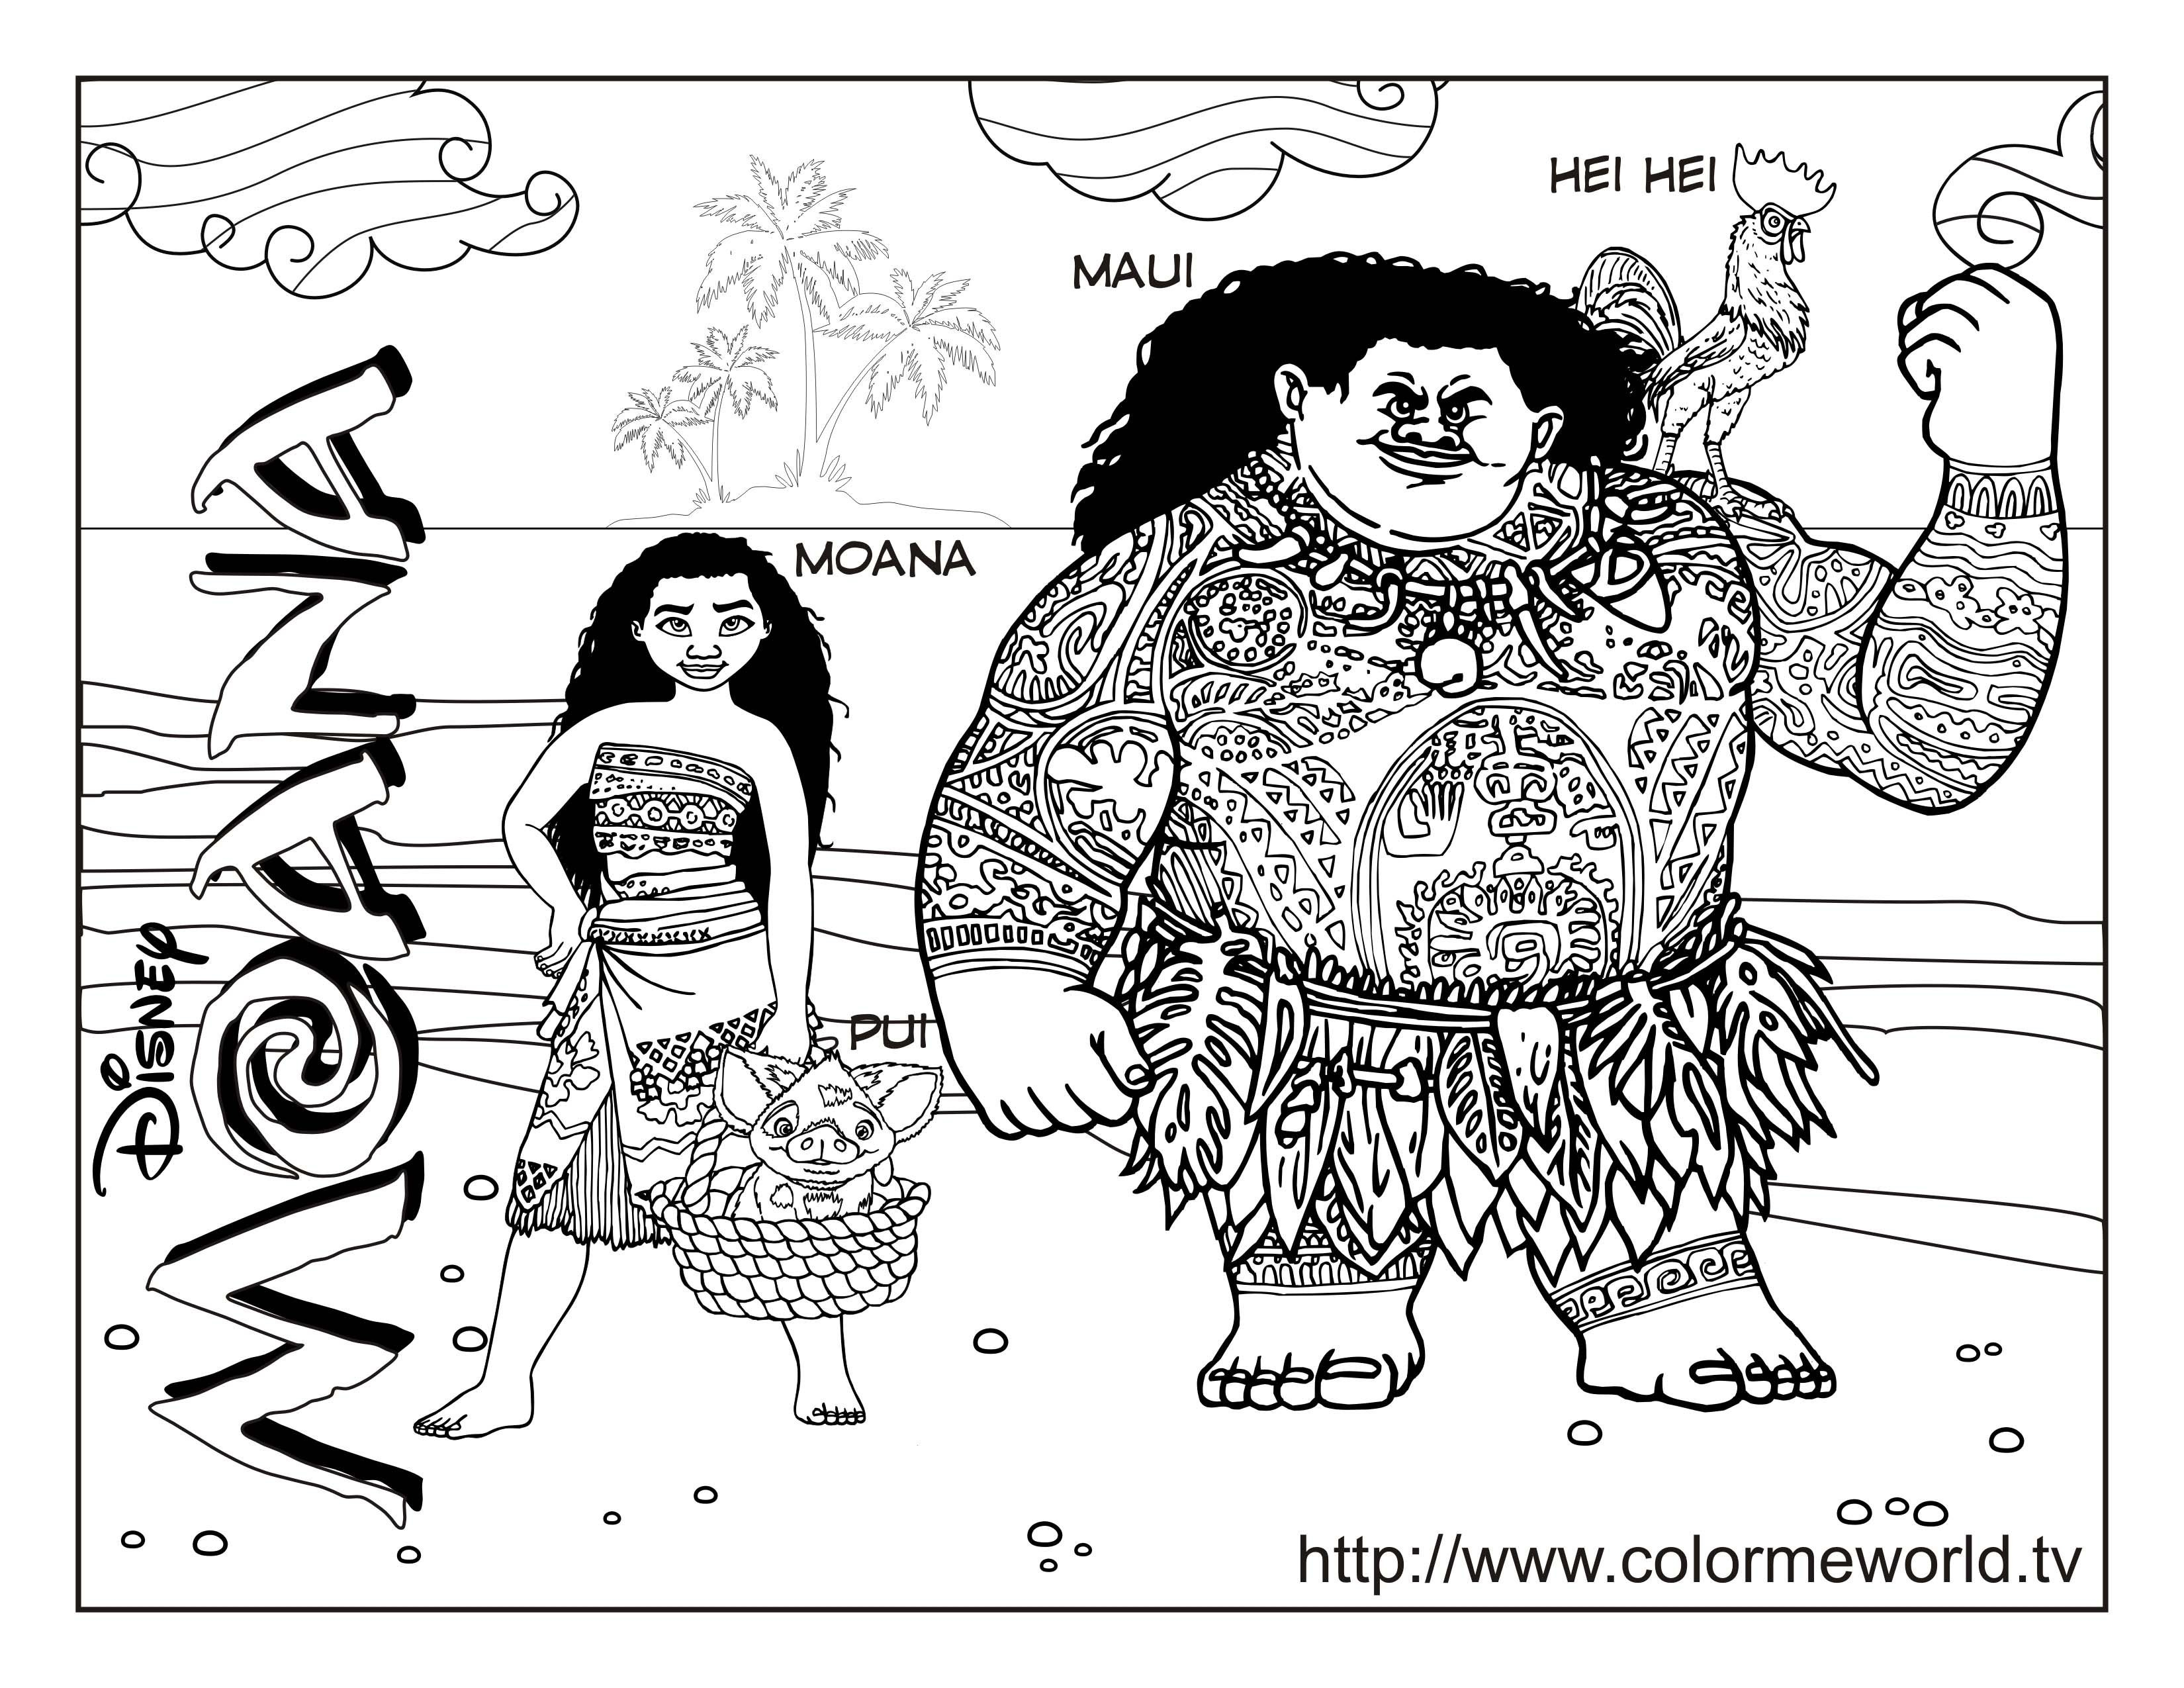 Moana Coloring Pages : Free Printable Moana Pdf Coloring Sheets For - Moana Coloring Pages Free Printable